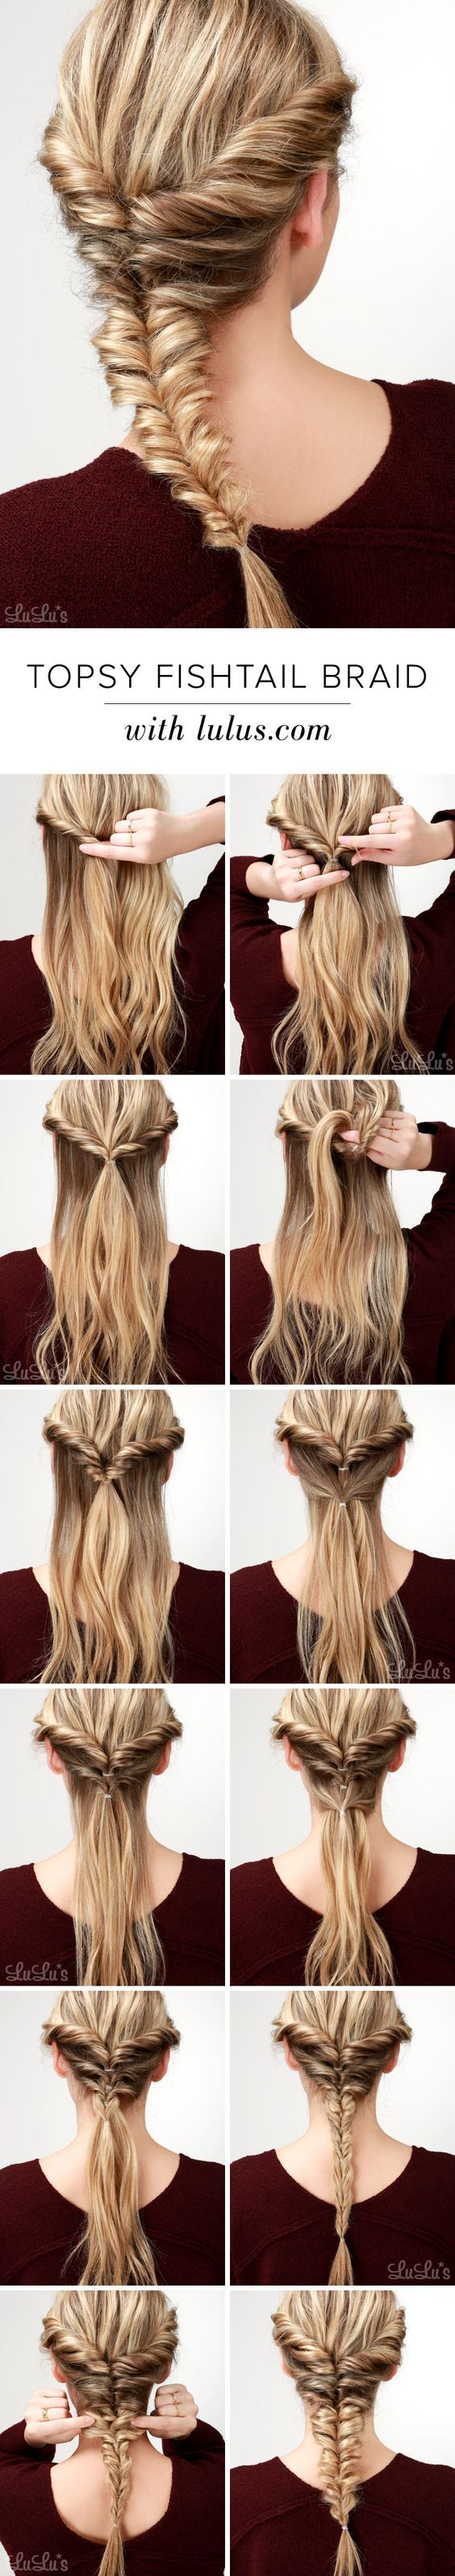 Hairstyle tutorials but you can choose best flat irons here